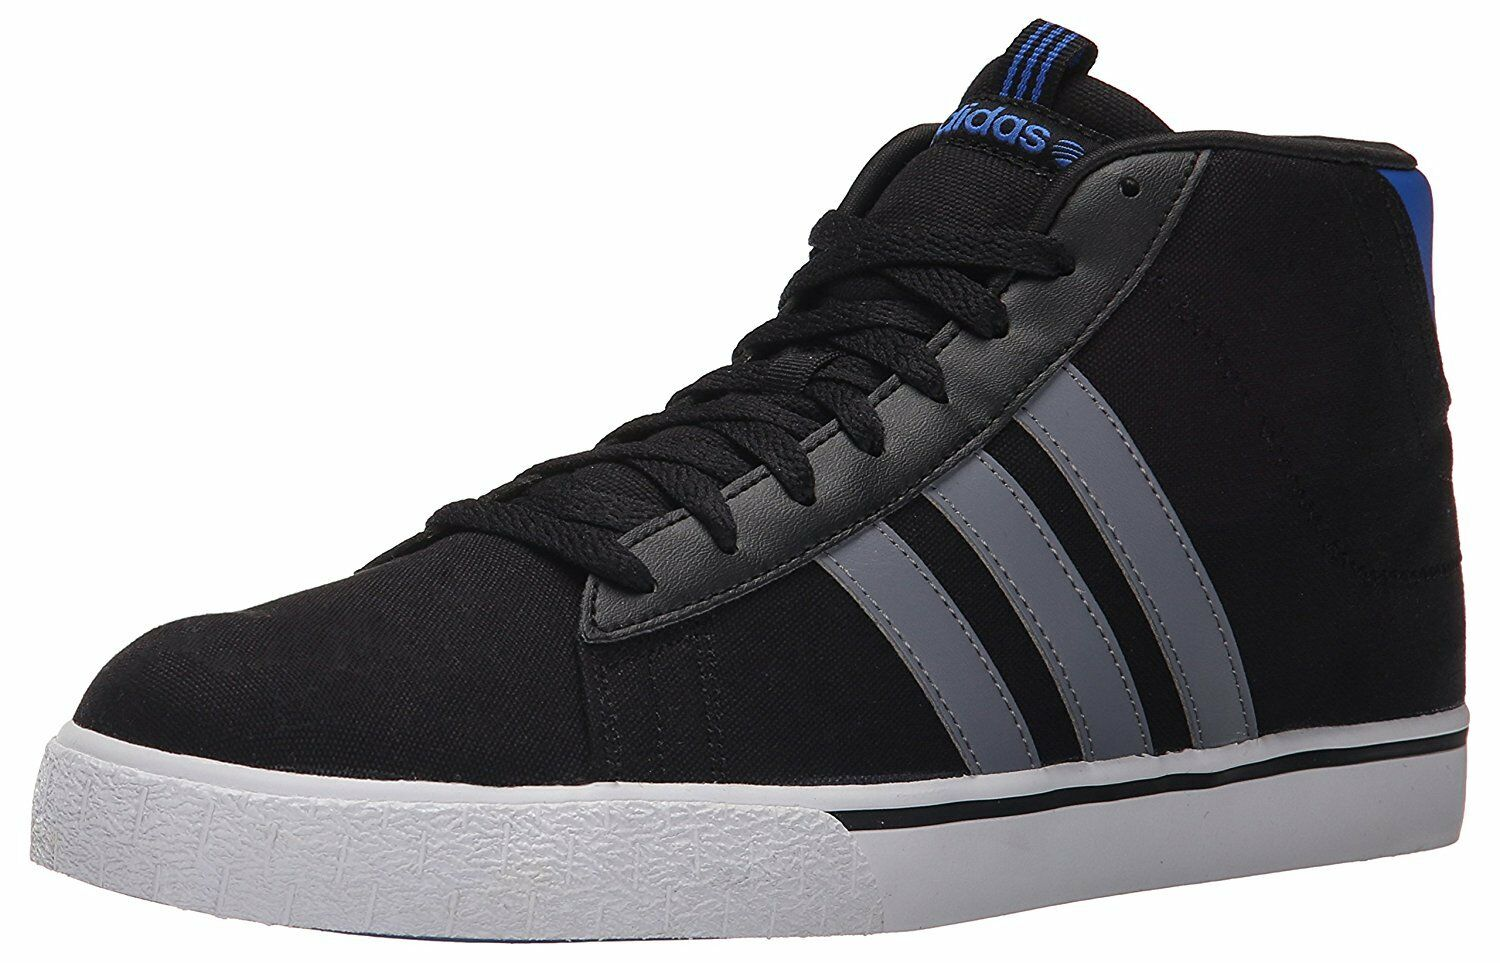 1bb95d708 ... Men s adidas Daily ST Mid II Sneakers